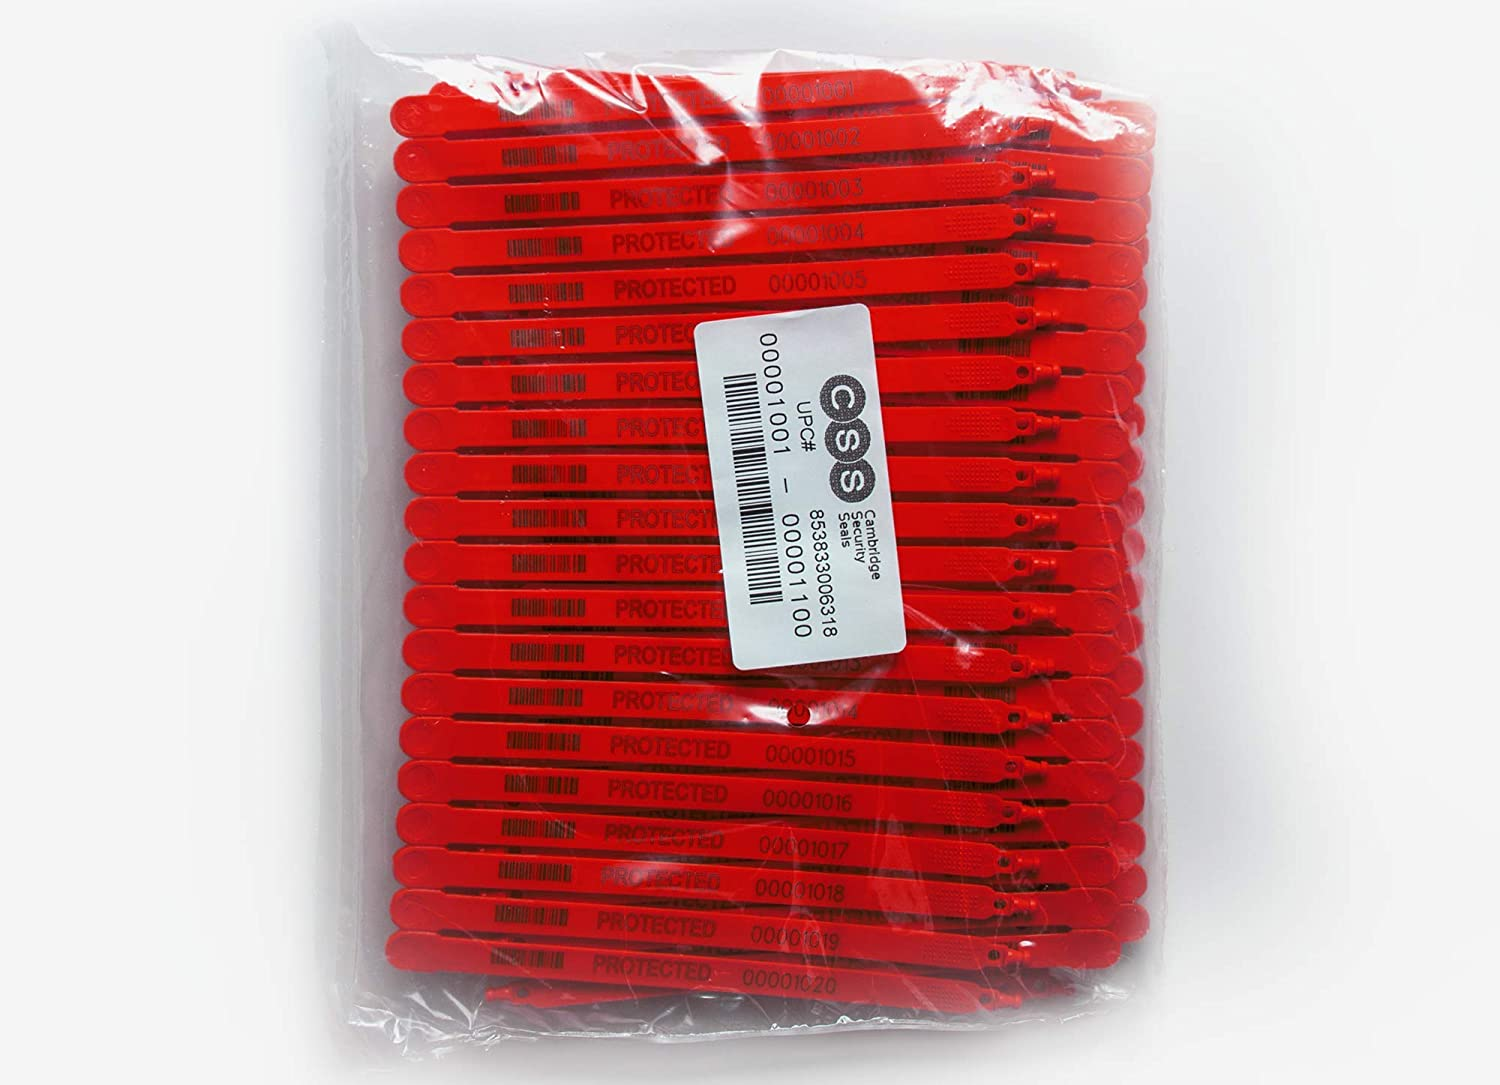 Cambridge Security Seals Plastic Truck Seal Fixed Length 7.5 Inch Red 100 Pieces Made in USA